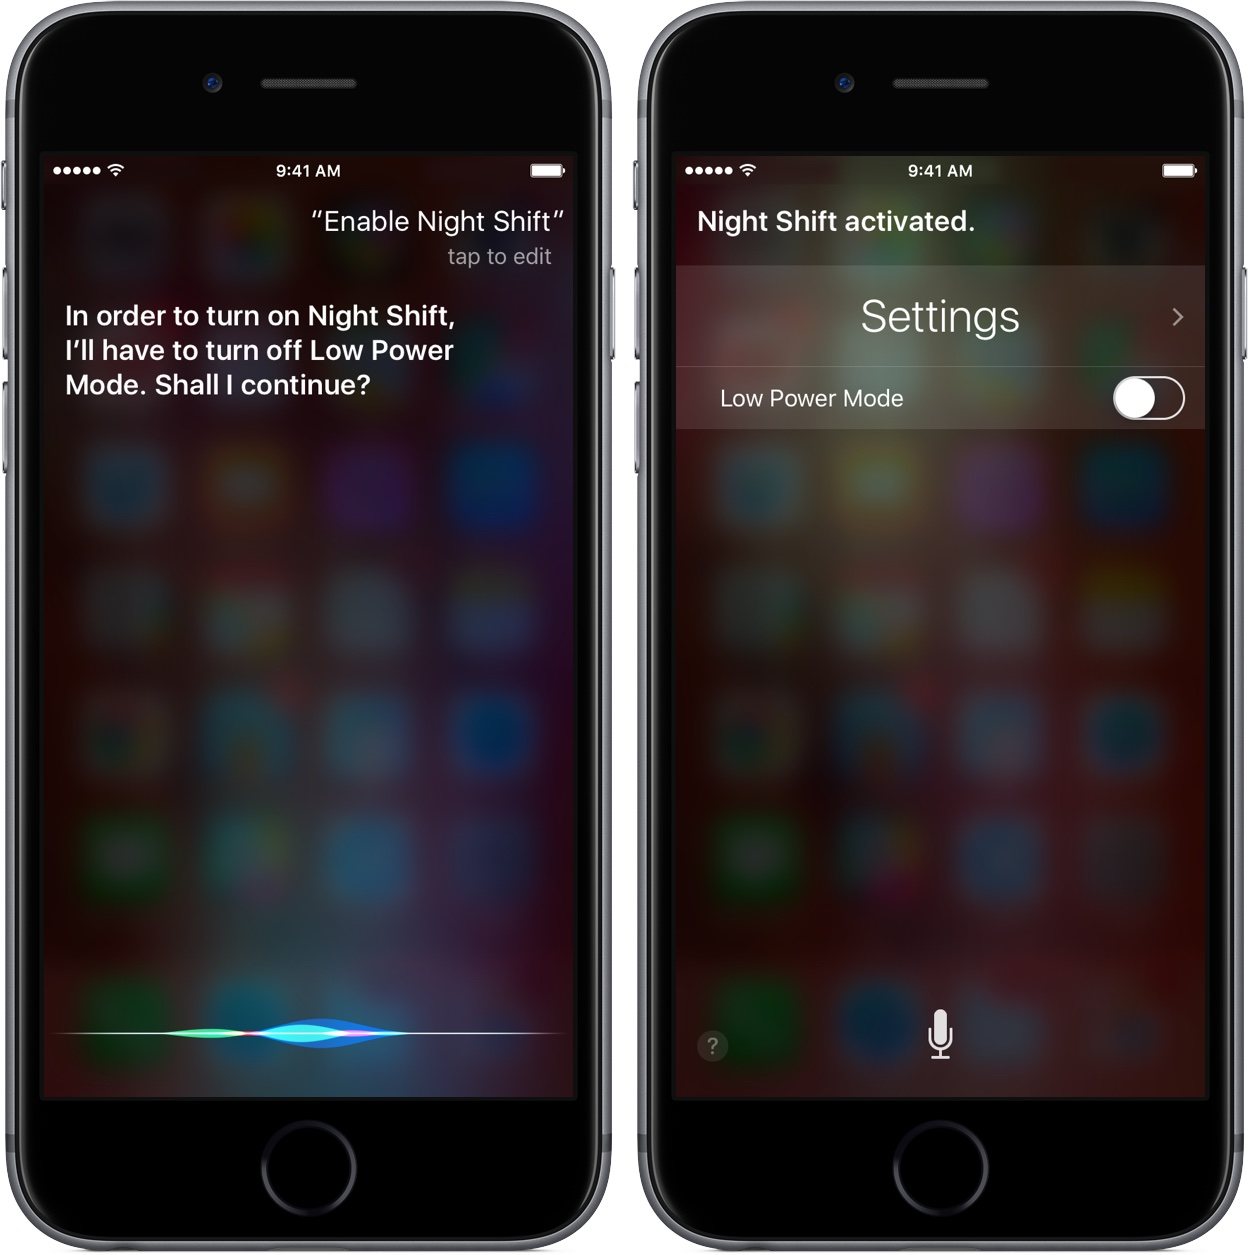 Siri Night Shift in Low Power Mode iPhone 6s screenshot 001